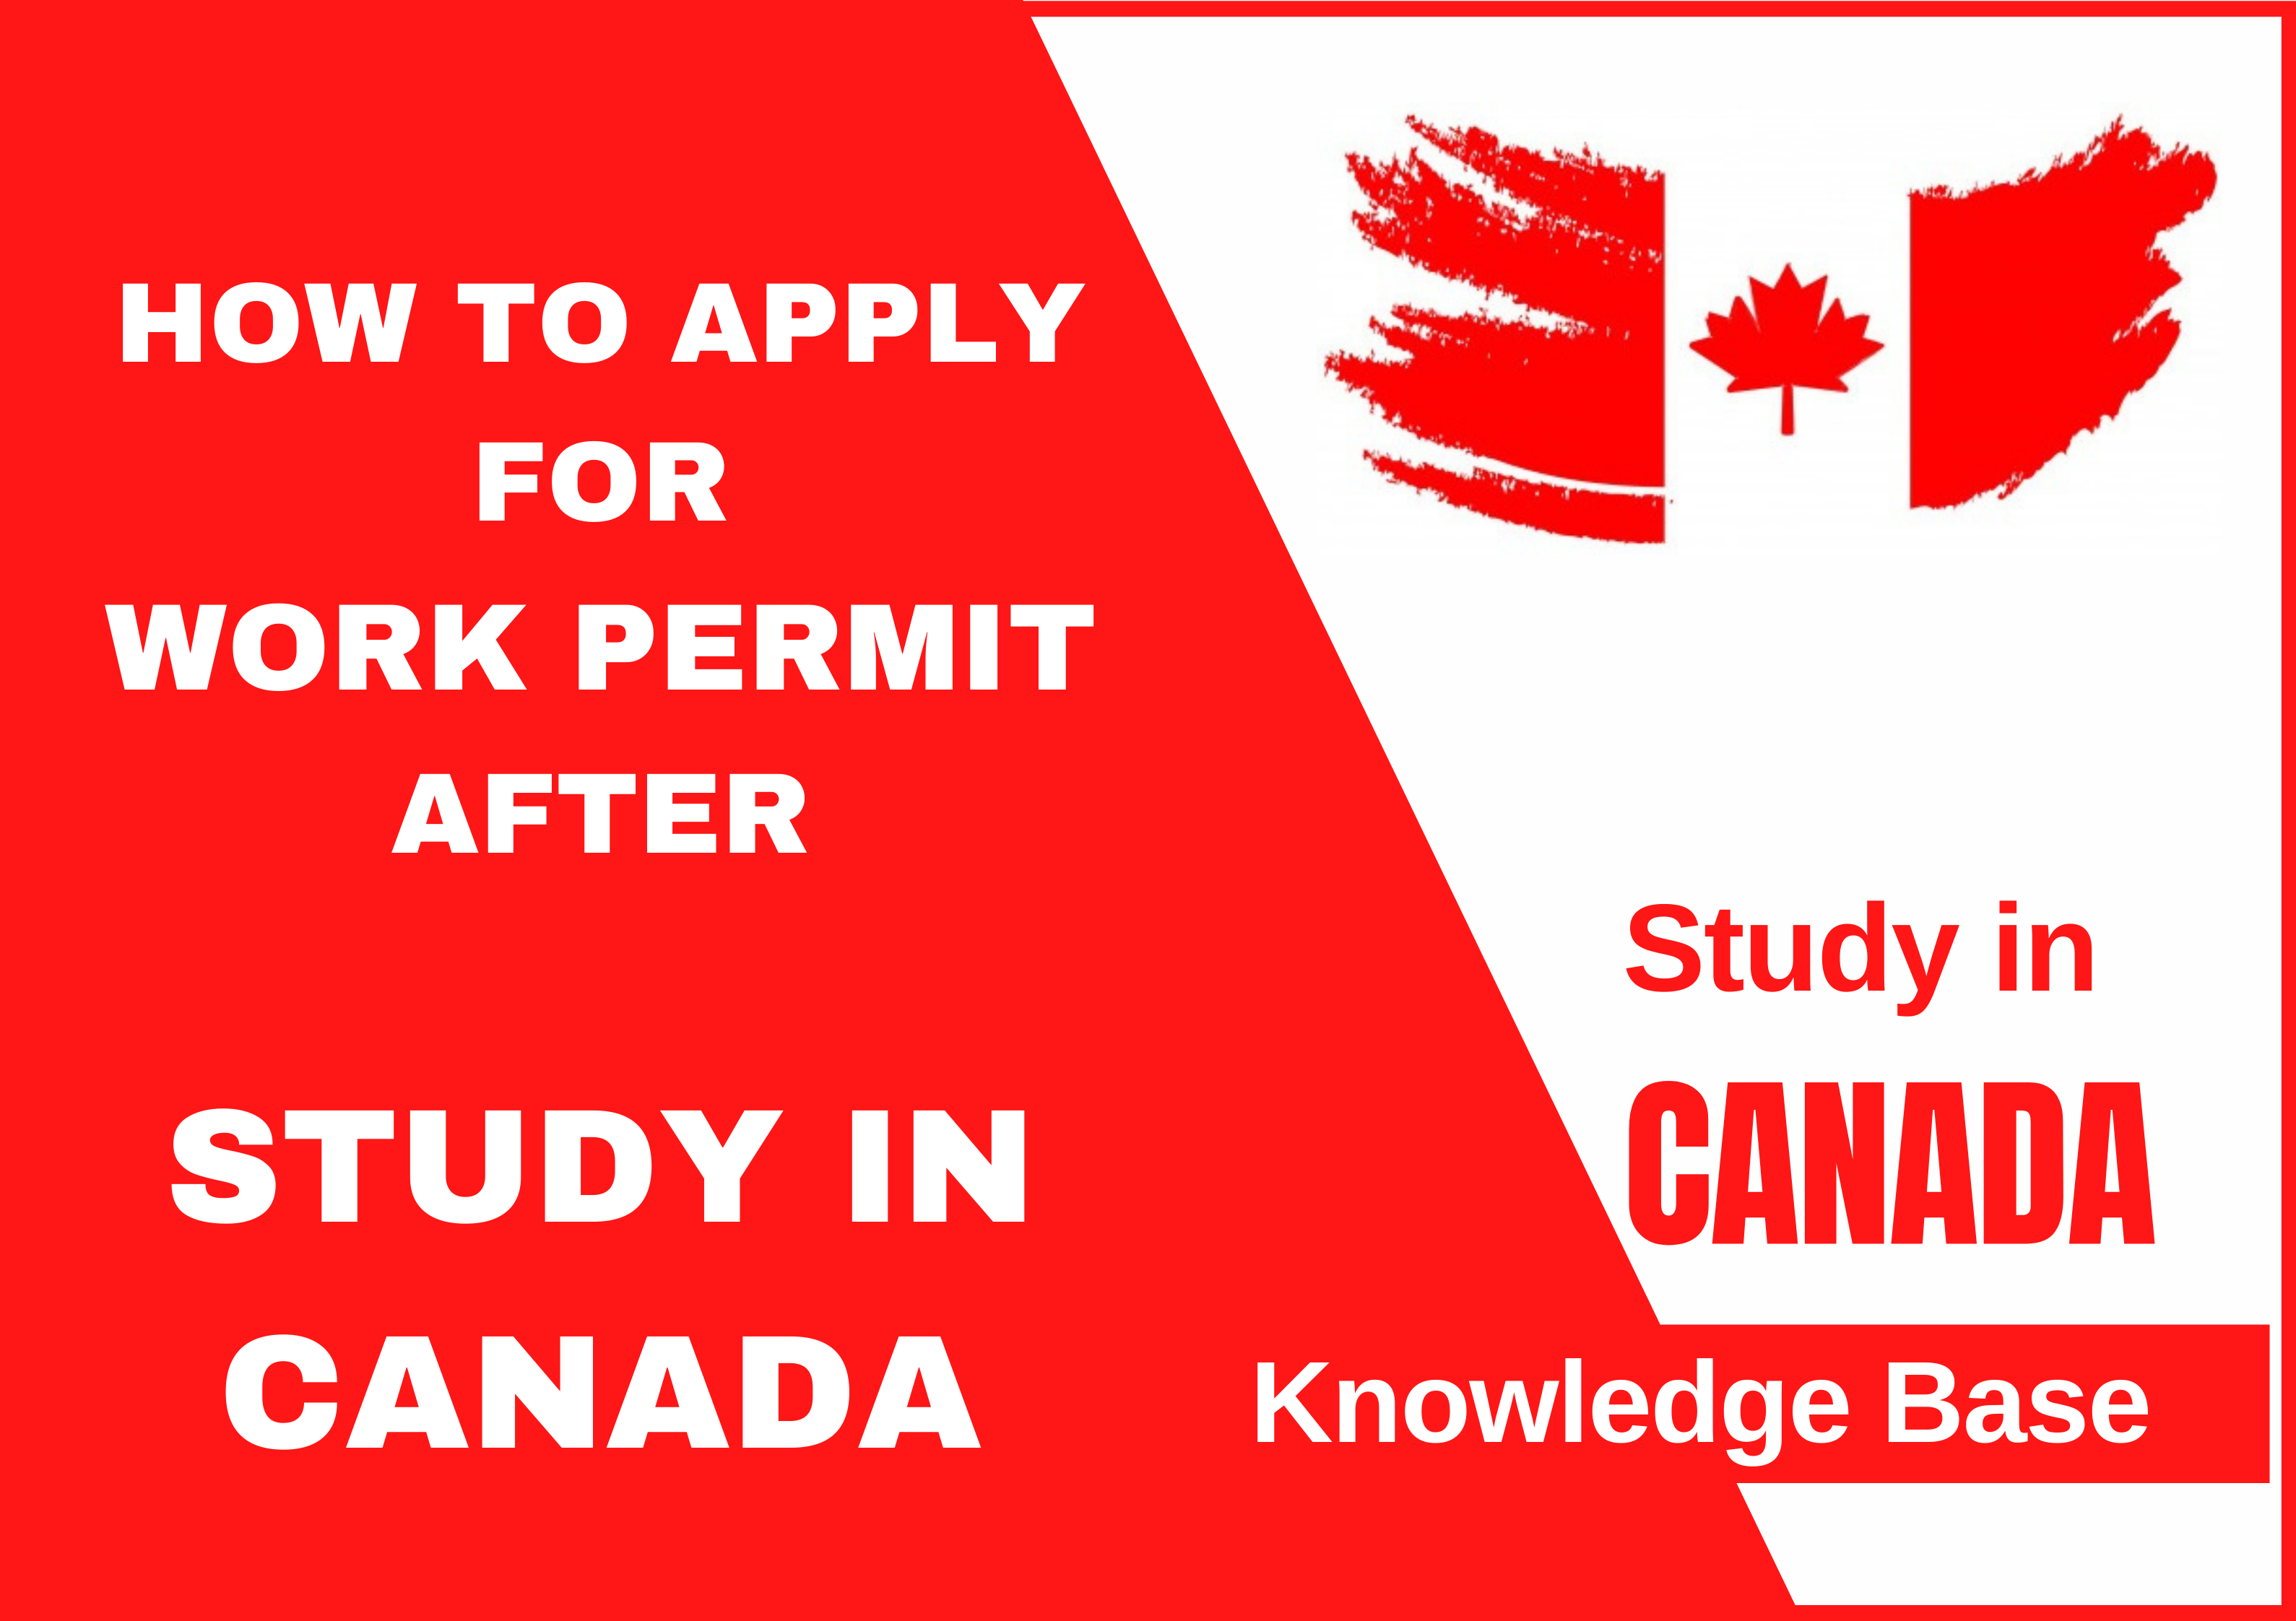 How to Apply for Work Permit After Study in Canada